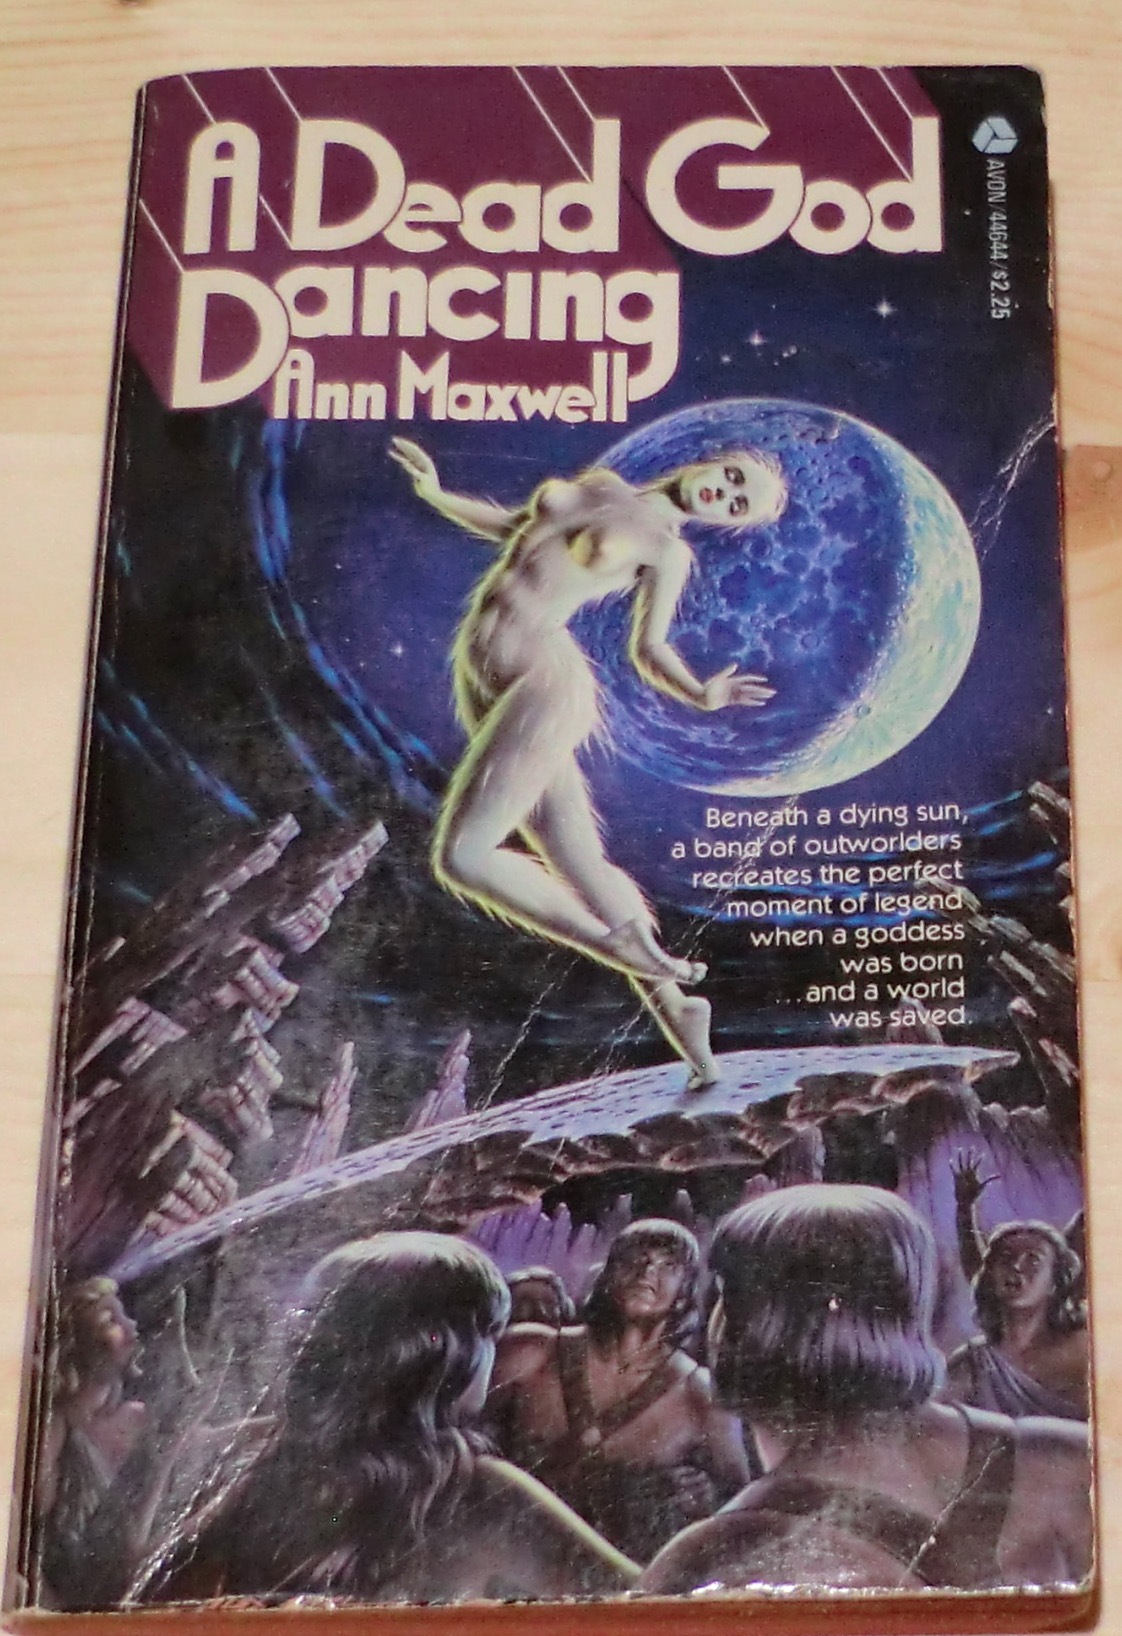 A dead god dancing - a pale white woman who looks like she's naked and covered with feathers dancing above a group of long haired angry primitive-looking men